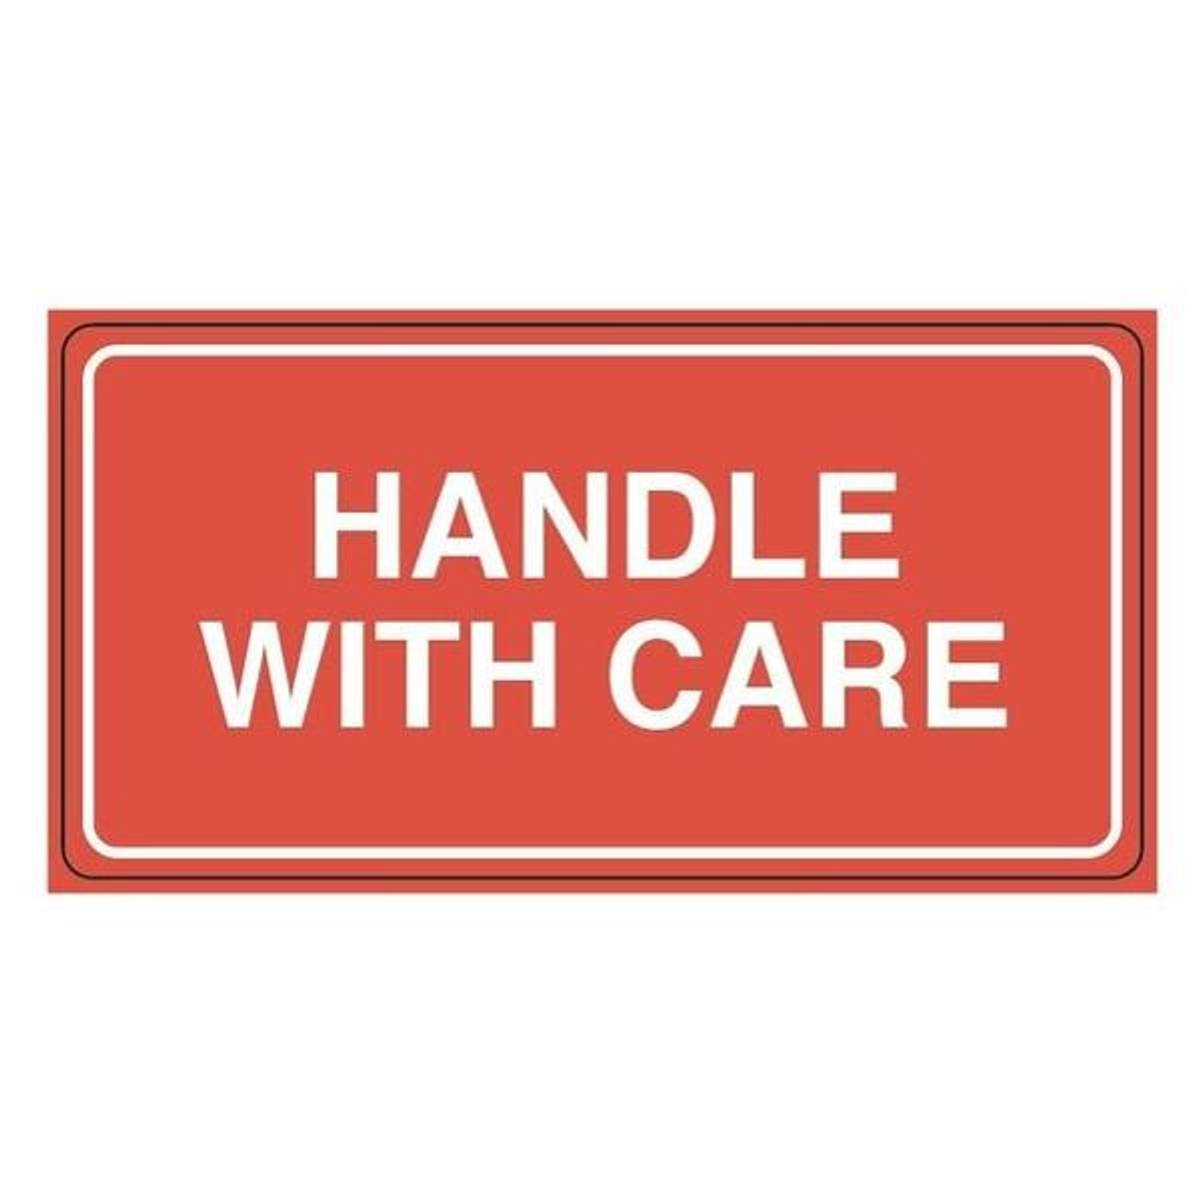 Etikett HANDLE WITH CARE 110x55 (rull)